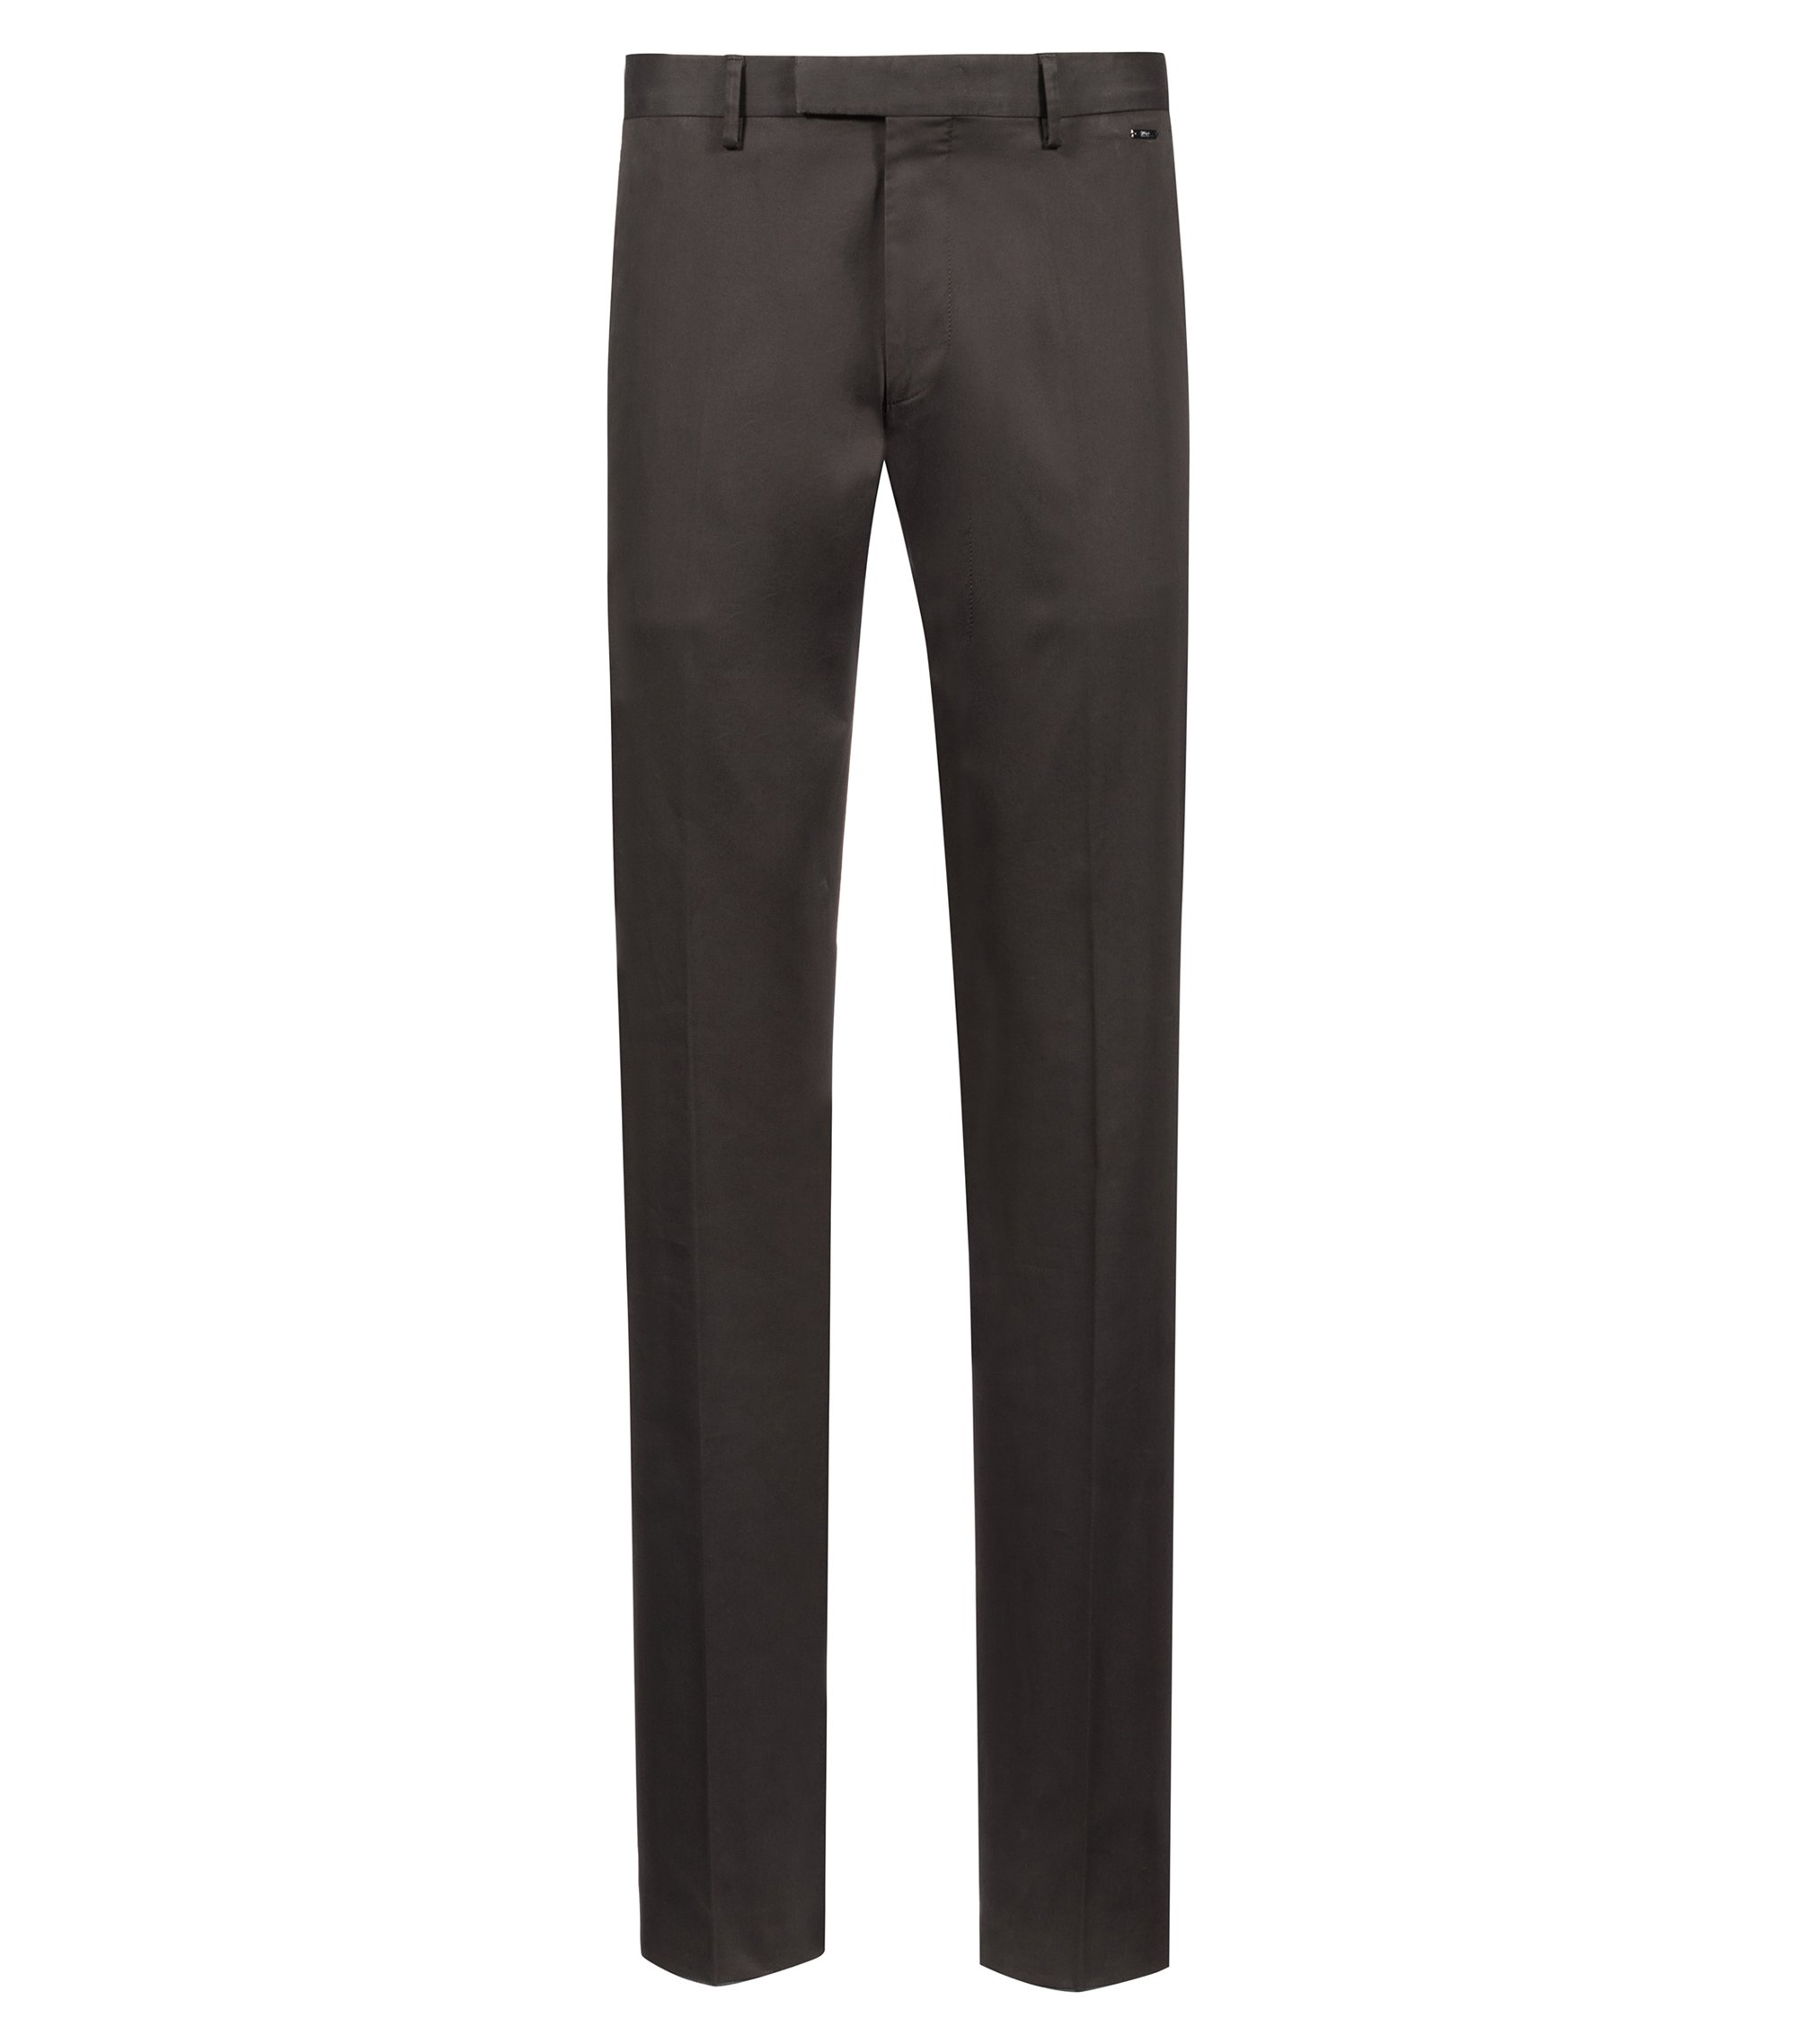 Pantalon Regular Fit en coton stretch lavé, Vert sombre